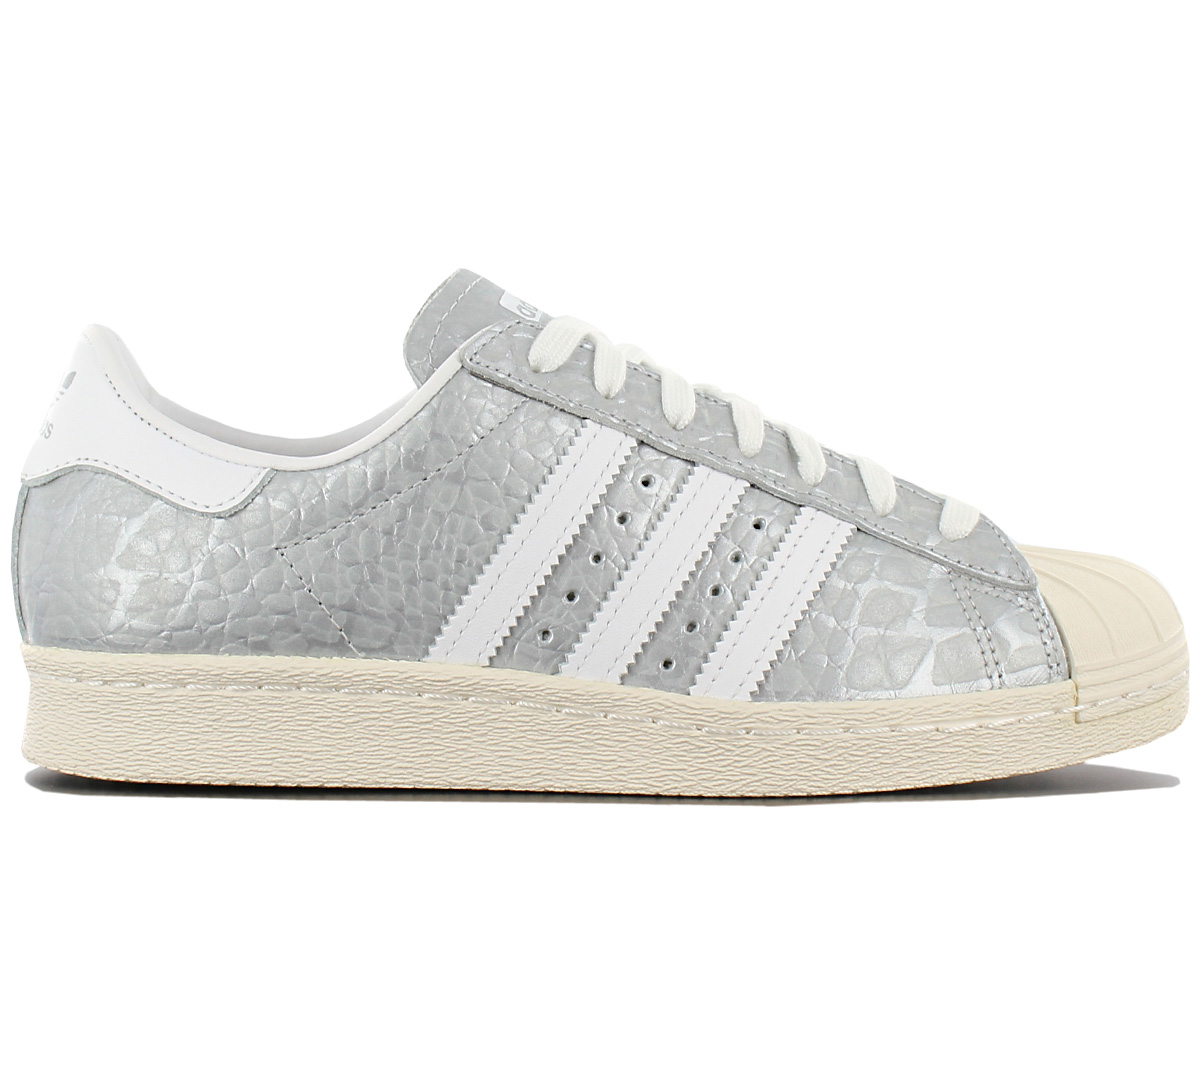 97389f5dd210 Adidas Originals Superstar 80s W Women s Sneakers Fashion Shoes ...